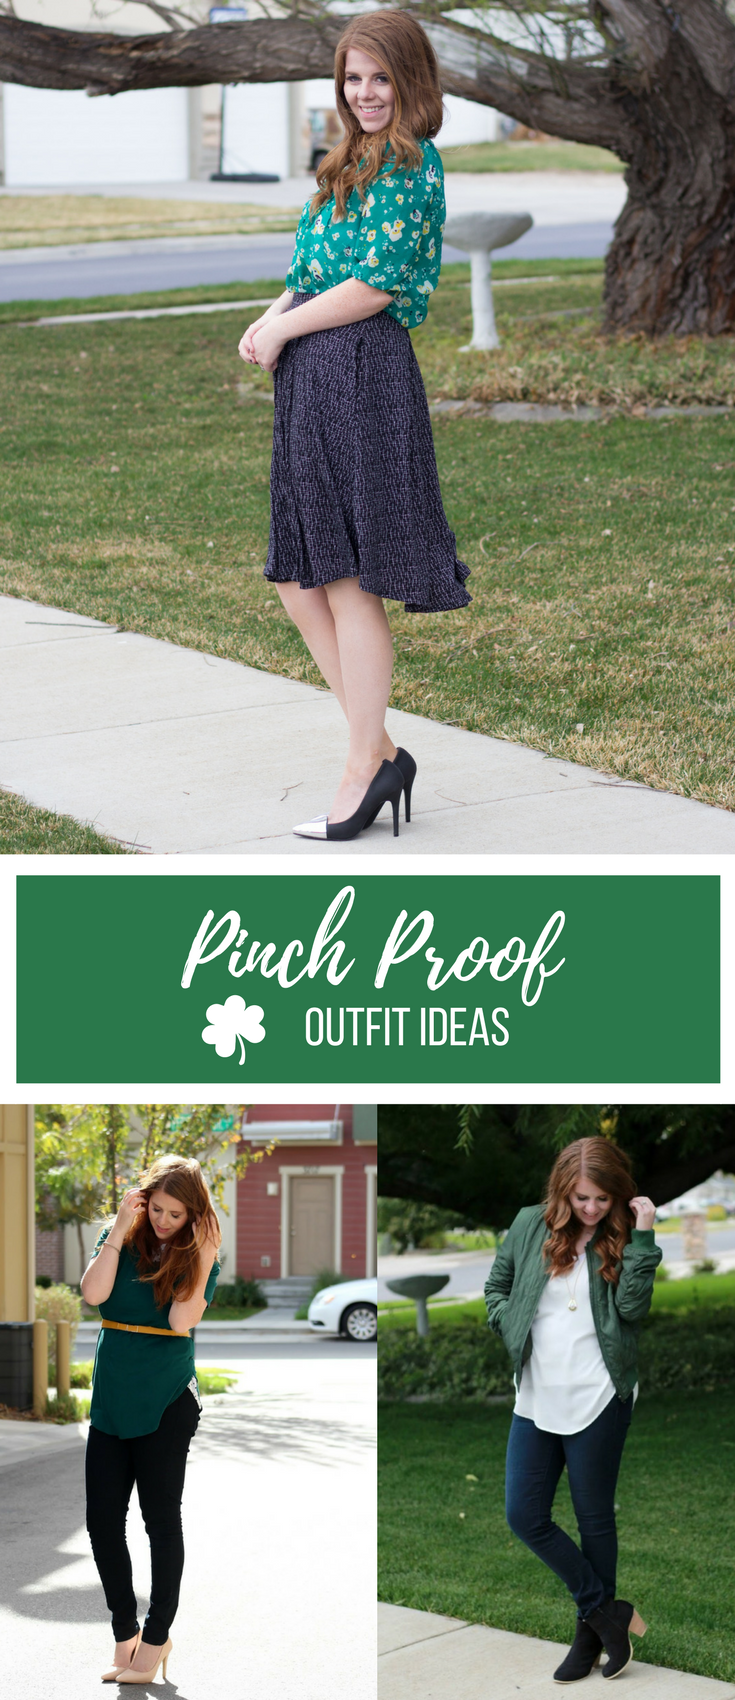 Pinch Proof outfits for St. Patrick's Da